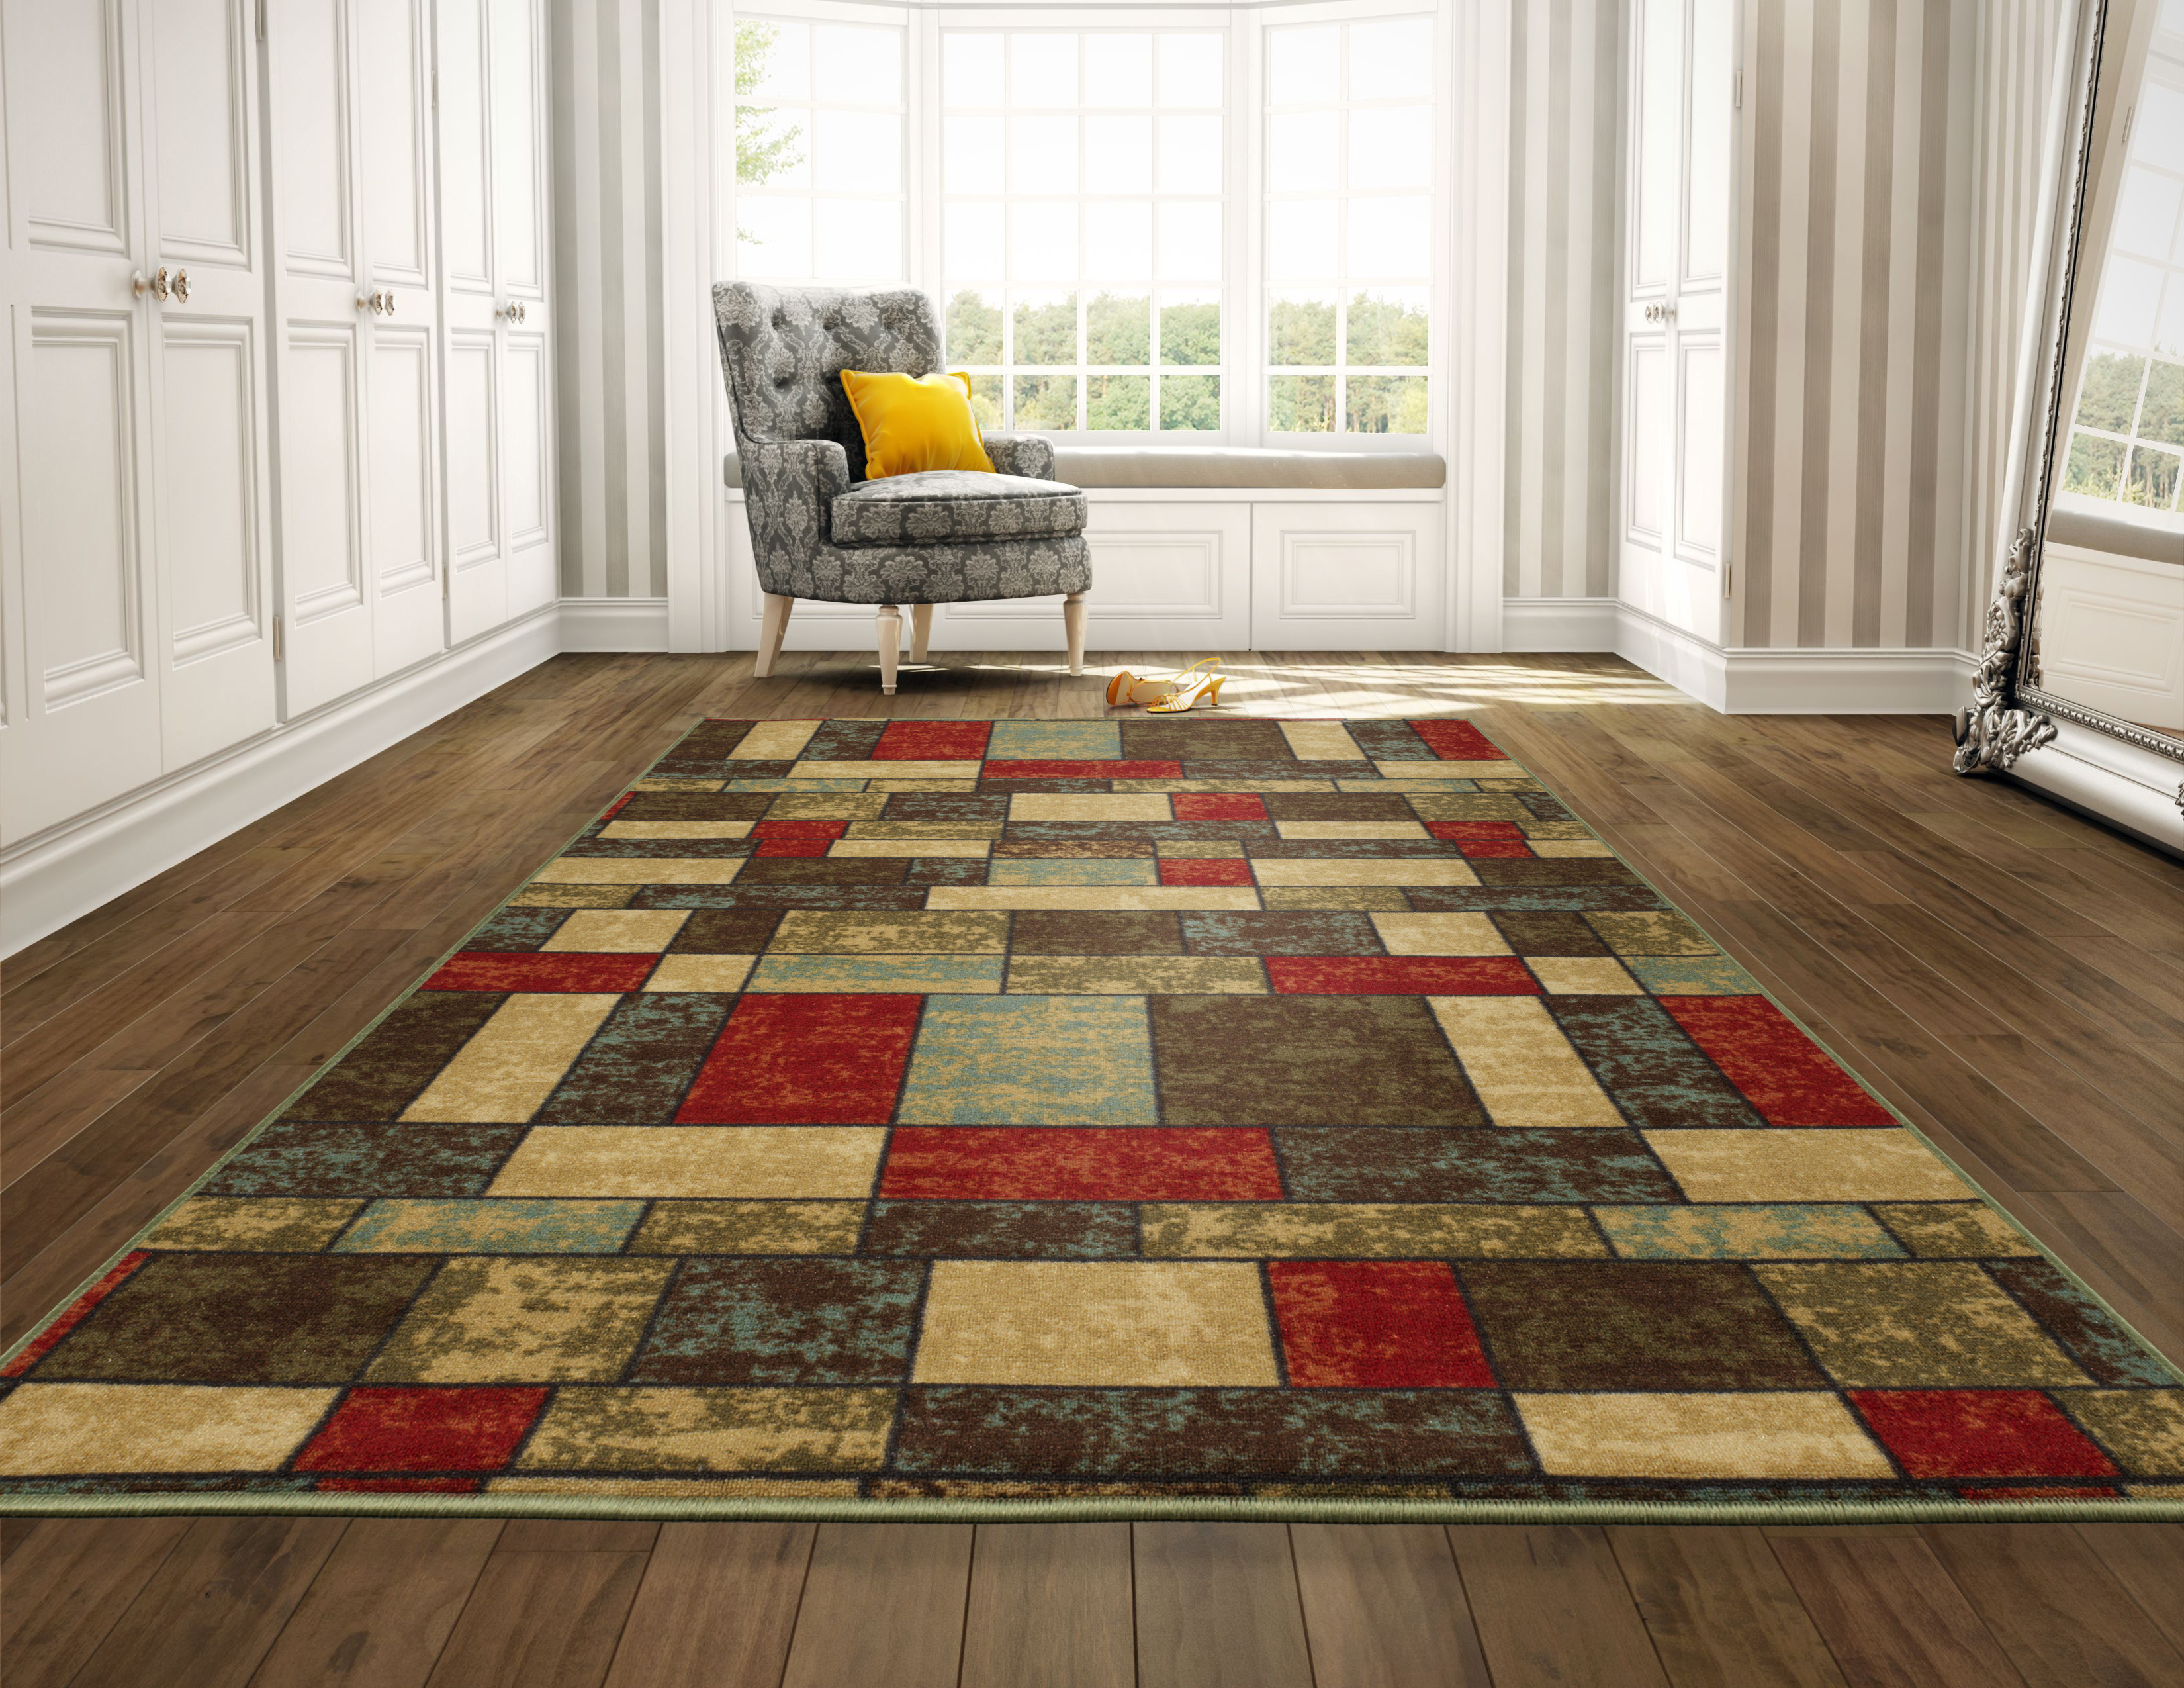 The Home Talk Moroccan Cotton Area Rug Hand Woven with Print Throw Kitchen Rugs Door Mat with Anti-Skid Backing Bedroom 24x60 INCH, Red Kitchen Indoor Area Rugs for Bathroom